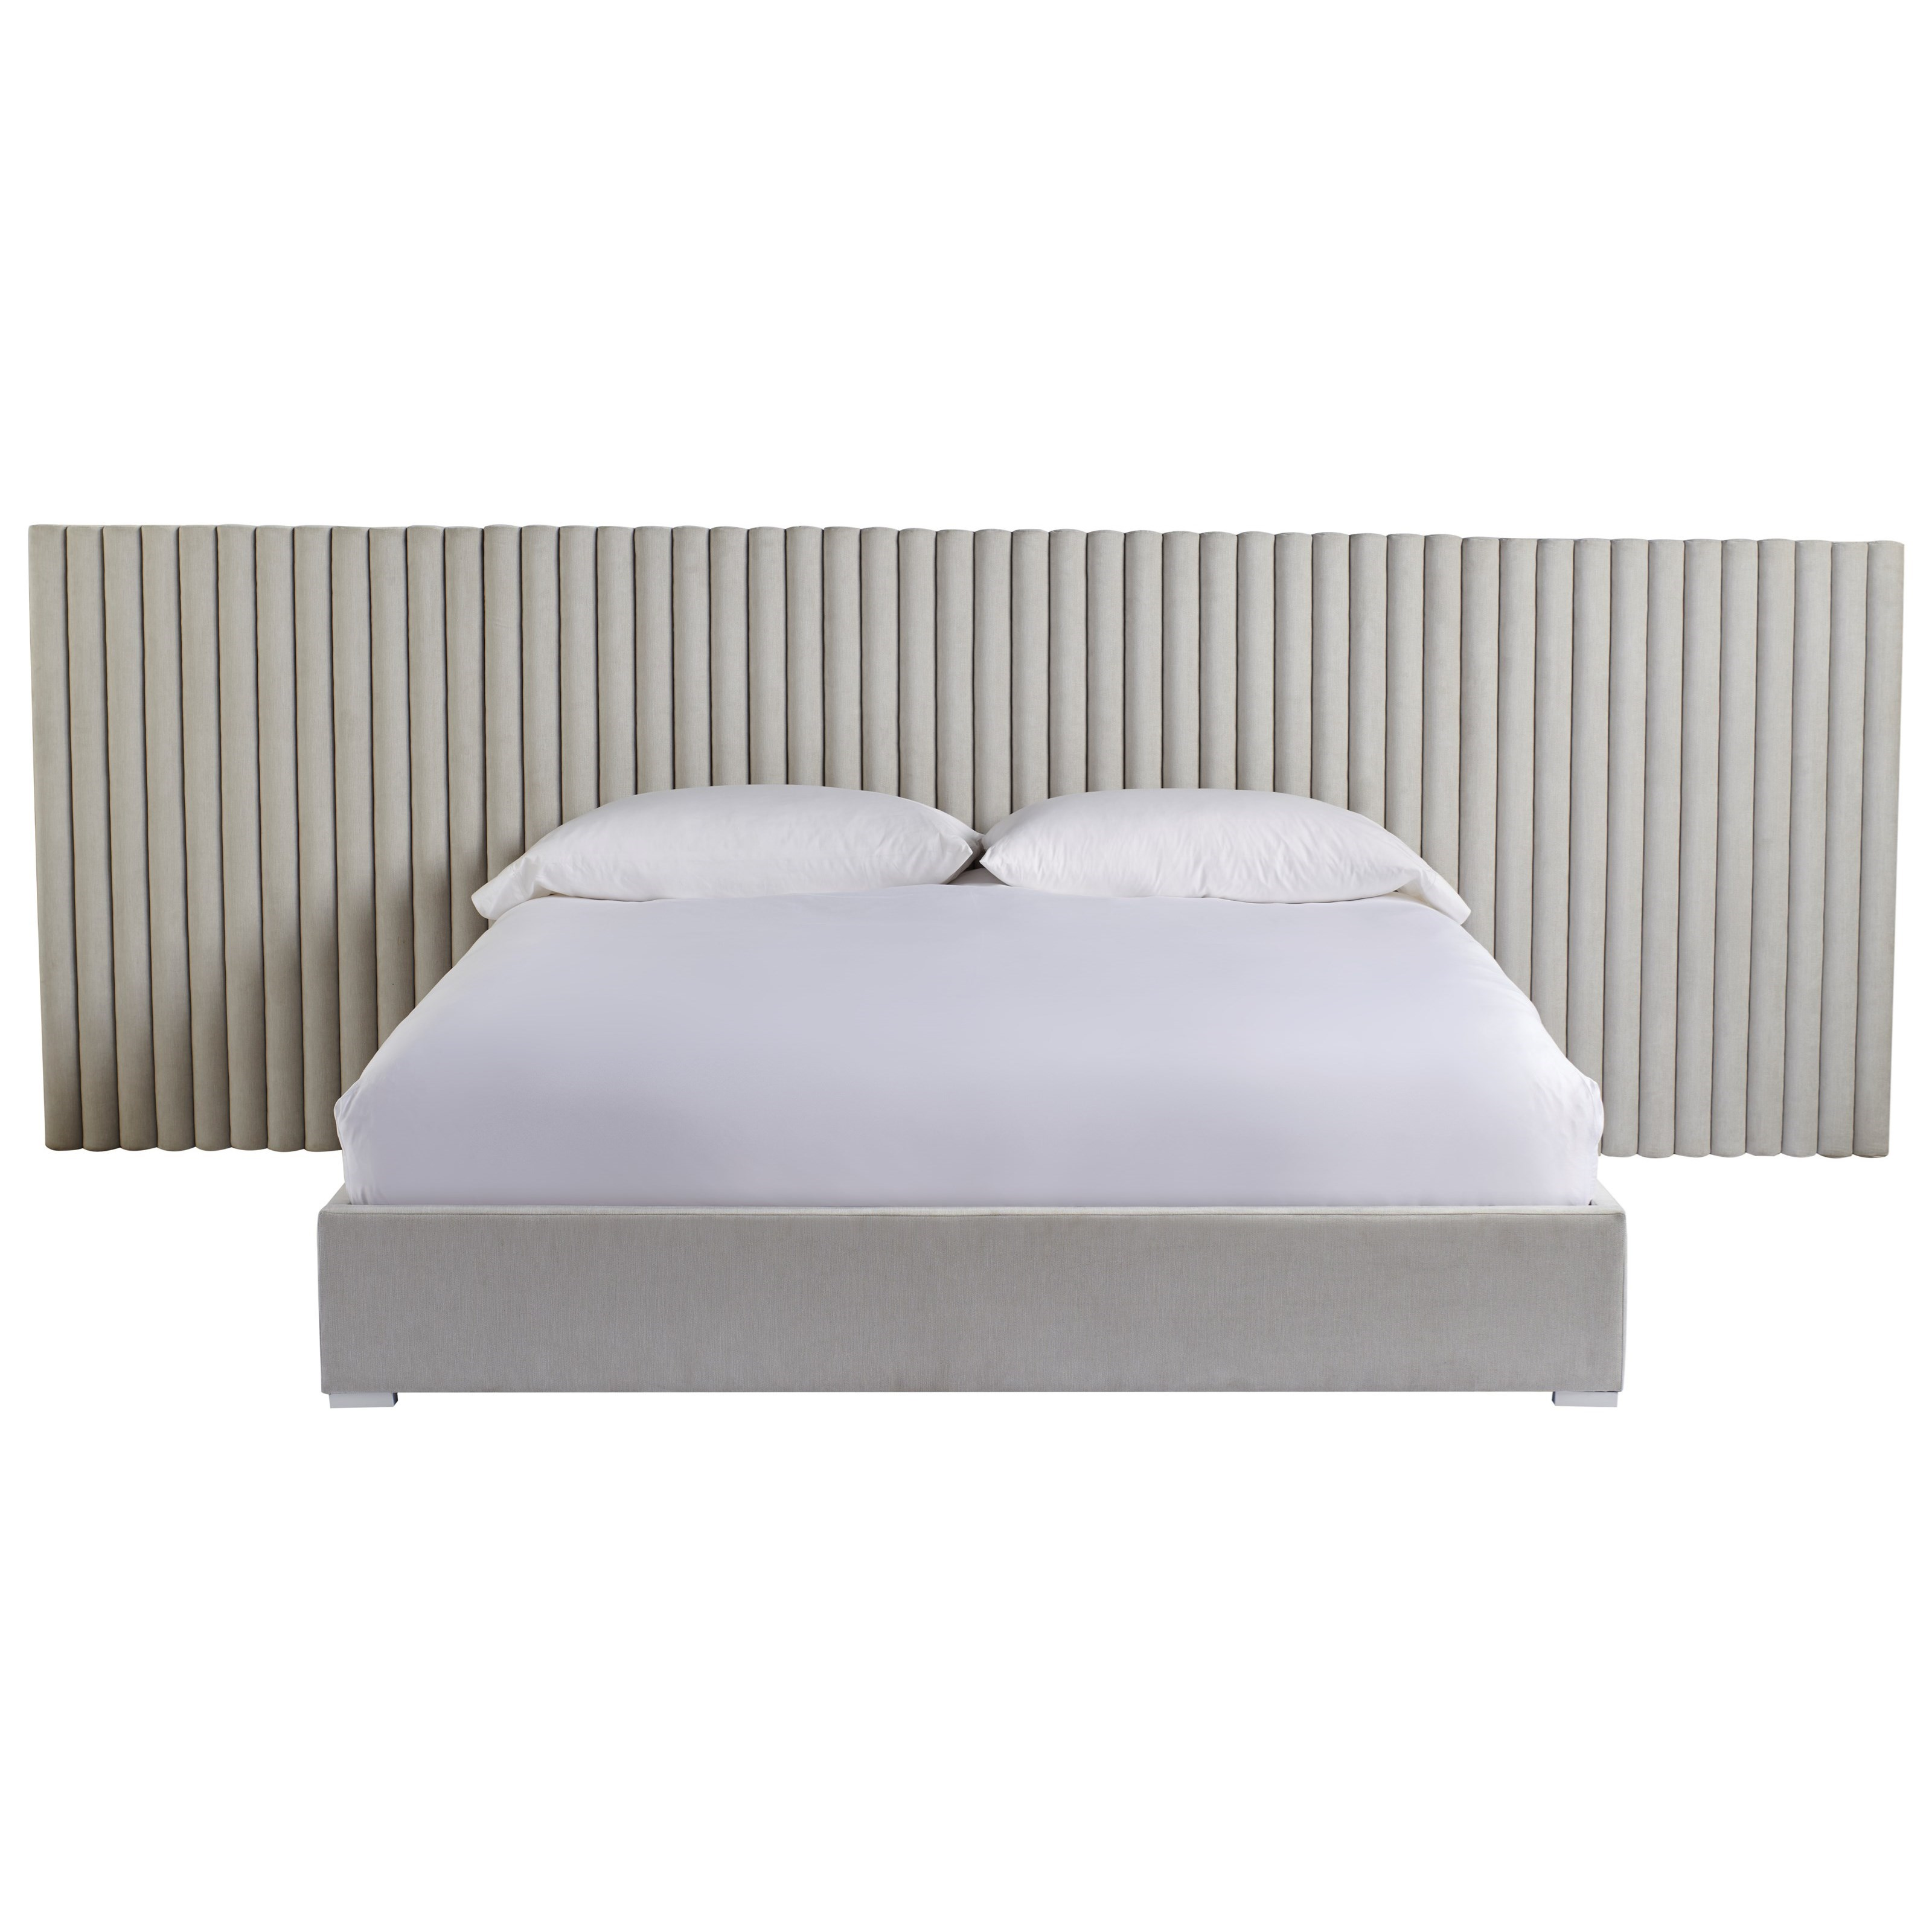 Modern Decker Queen Bed w/ Wall Panels by Universal at Baer's Furniture